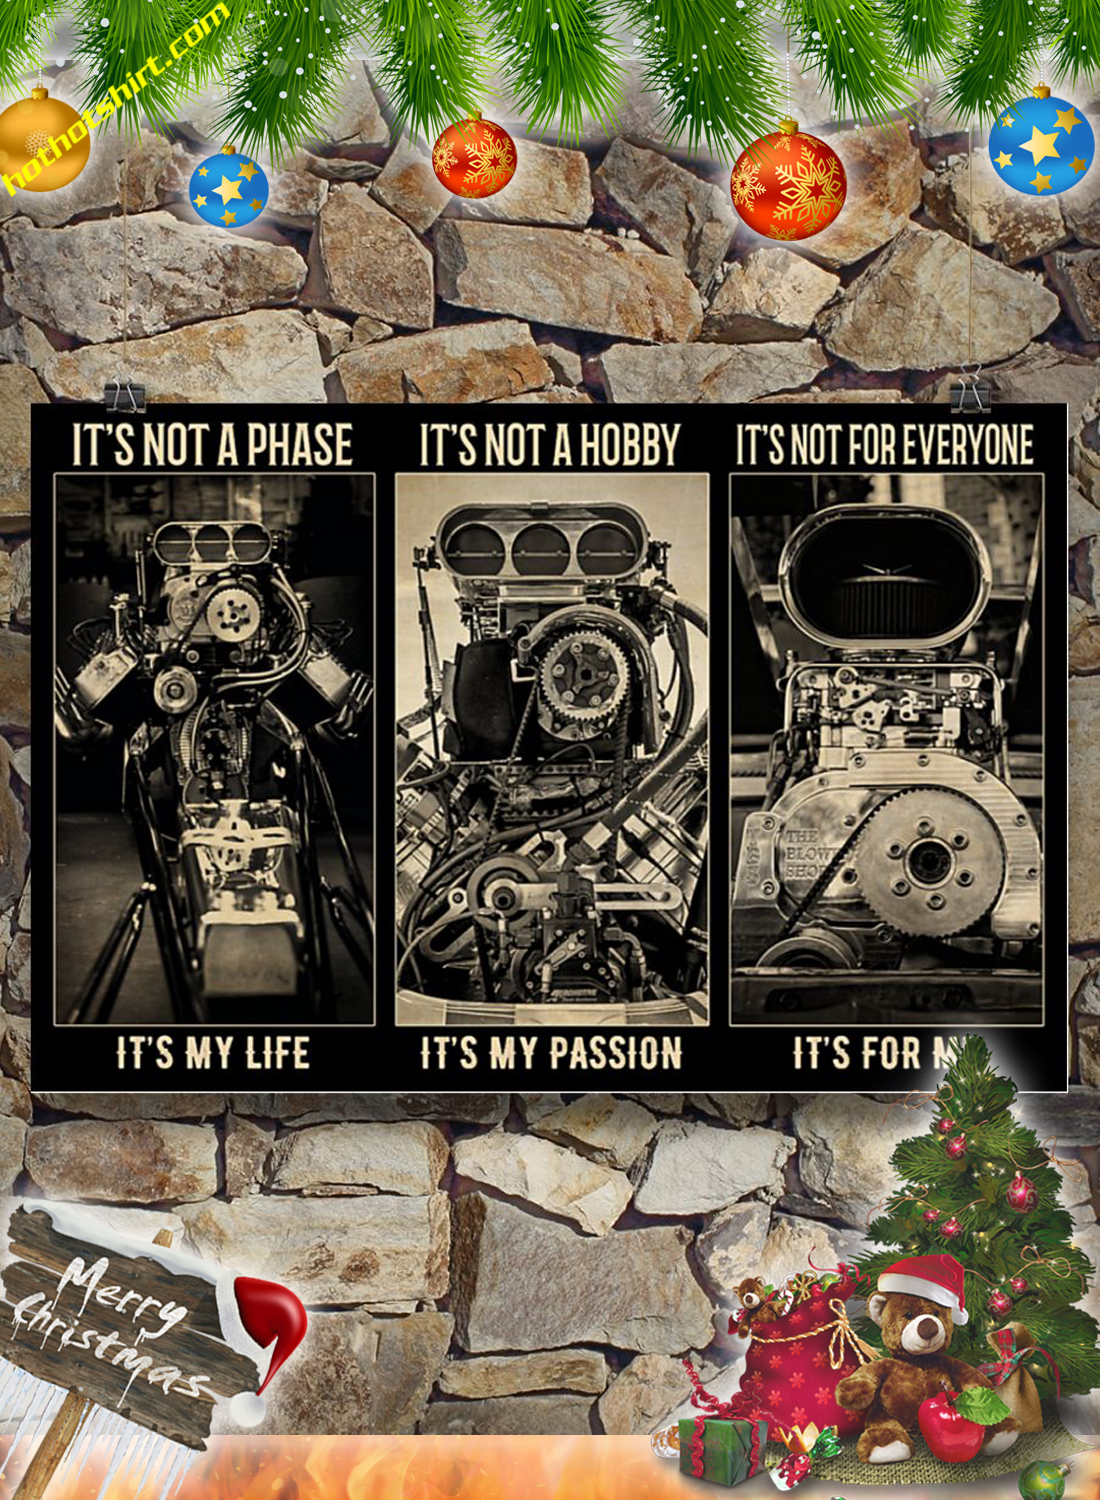 BW engine It's not a phase poster 3